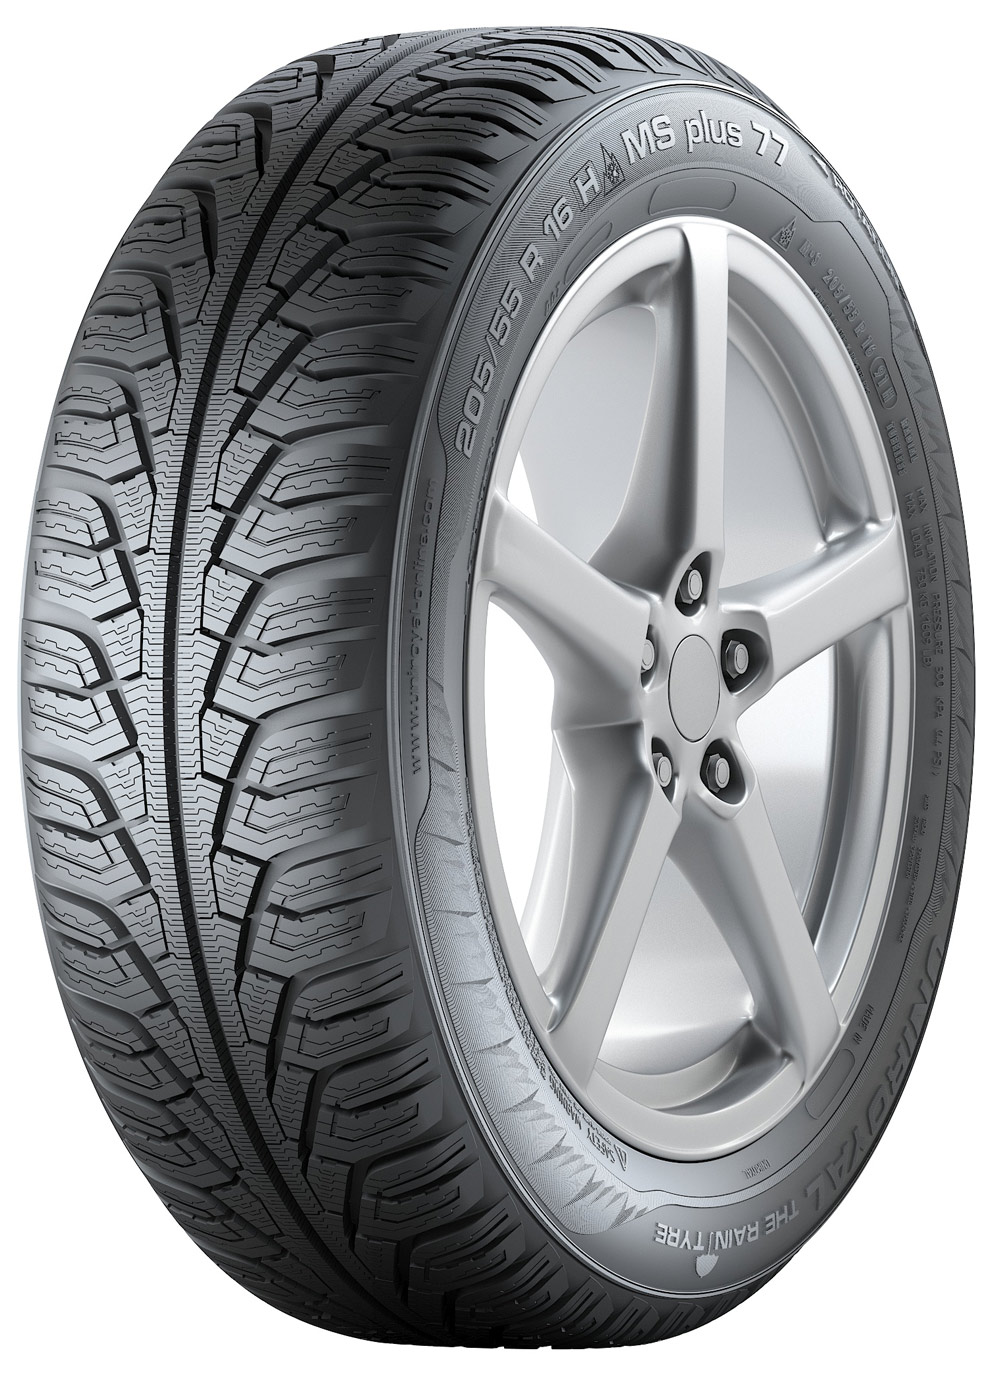 UNIROYAL MS PLUS 77 155/80 R 13